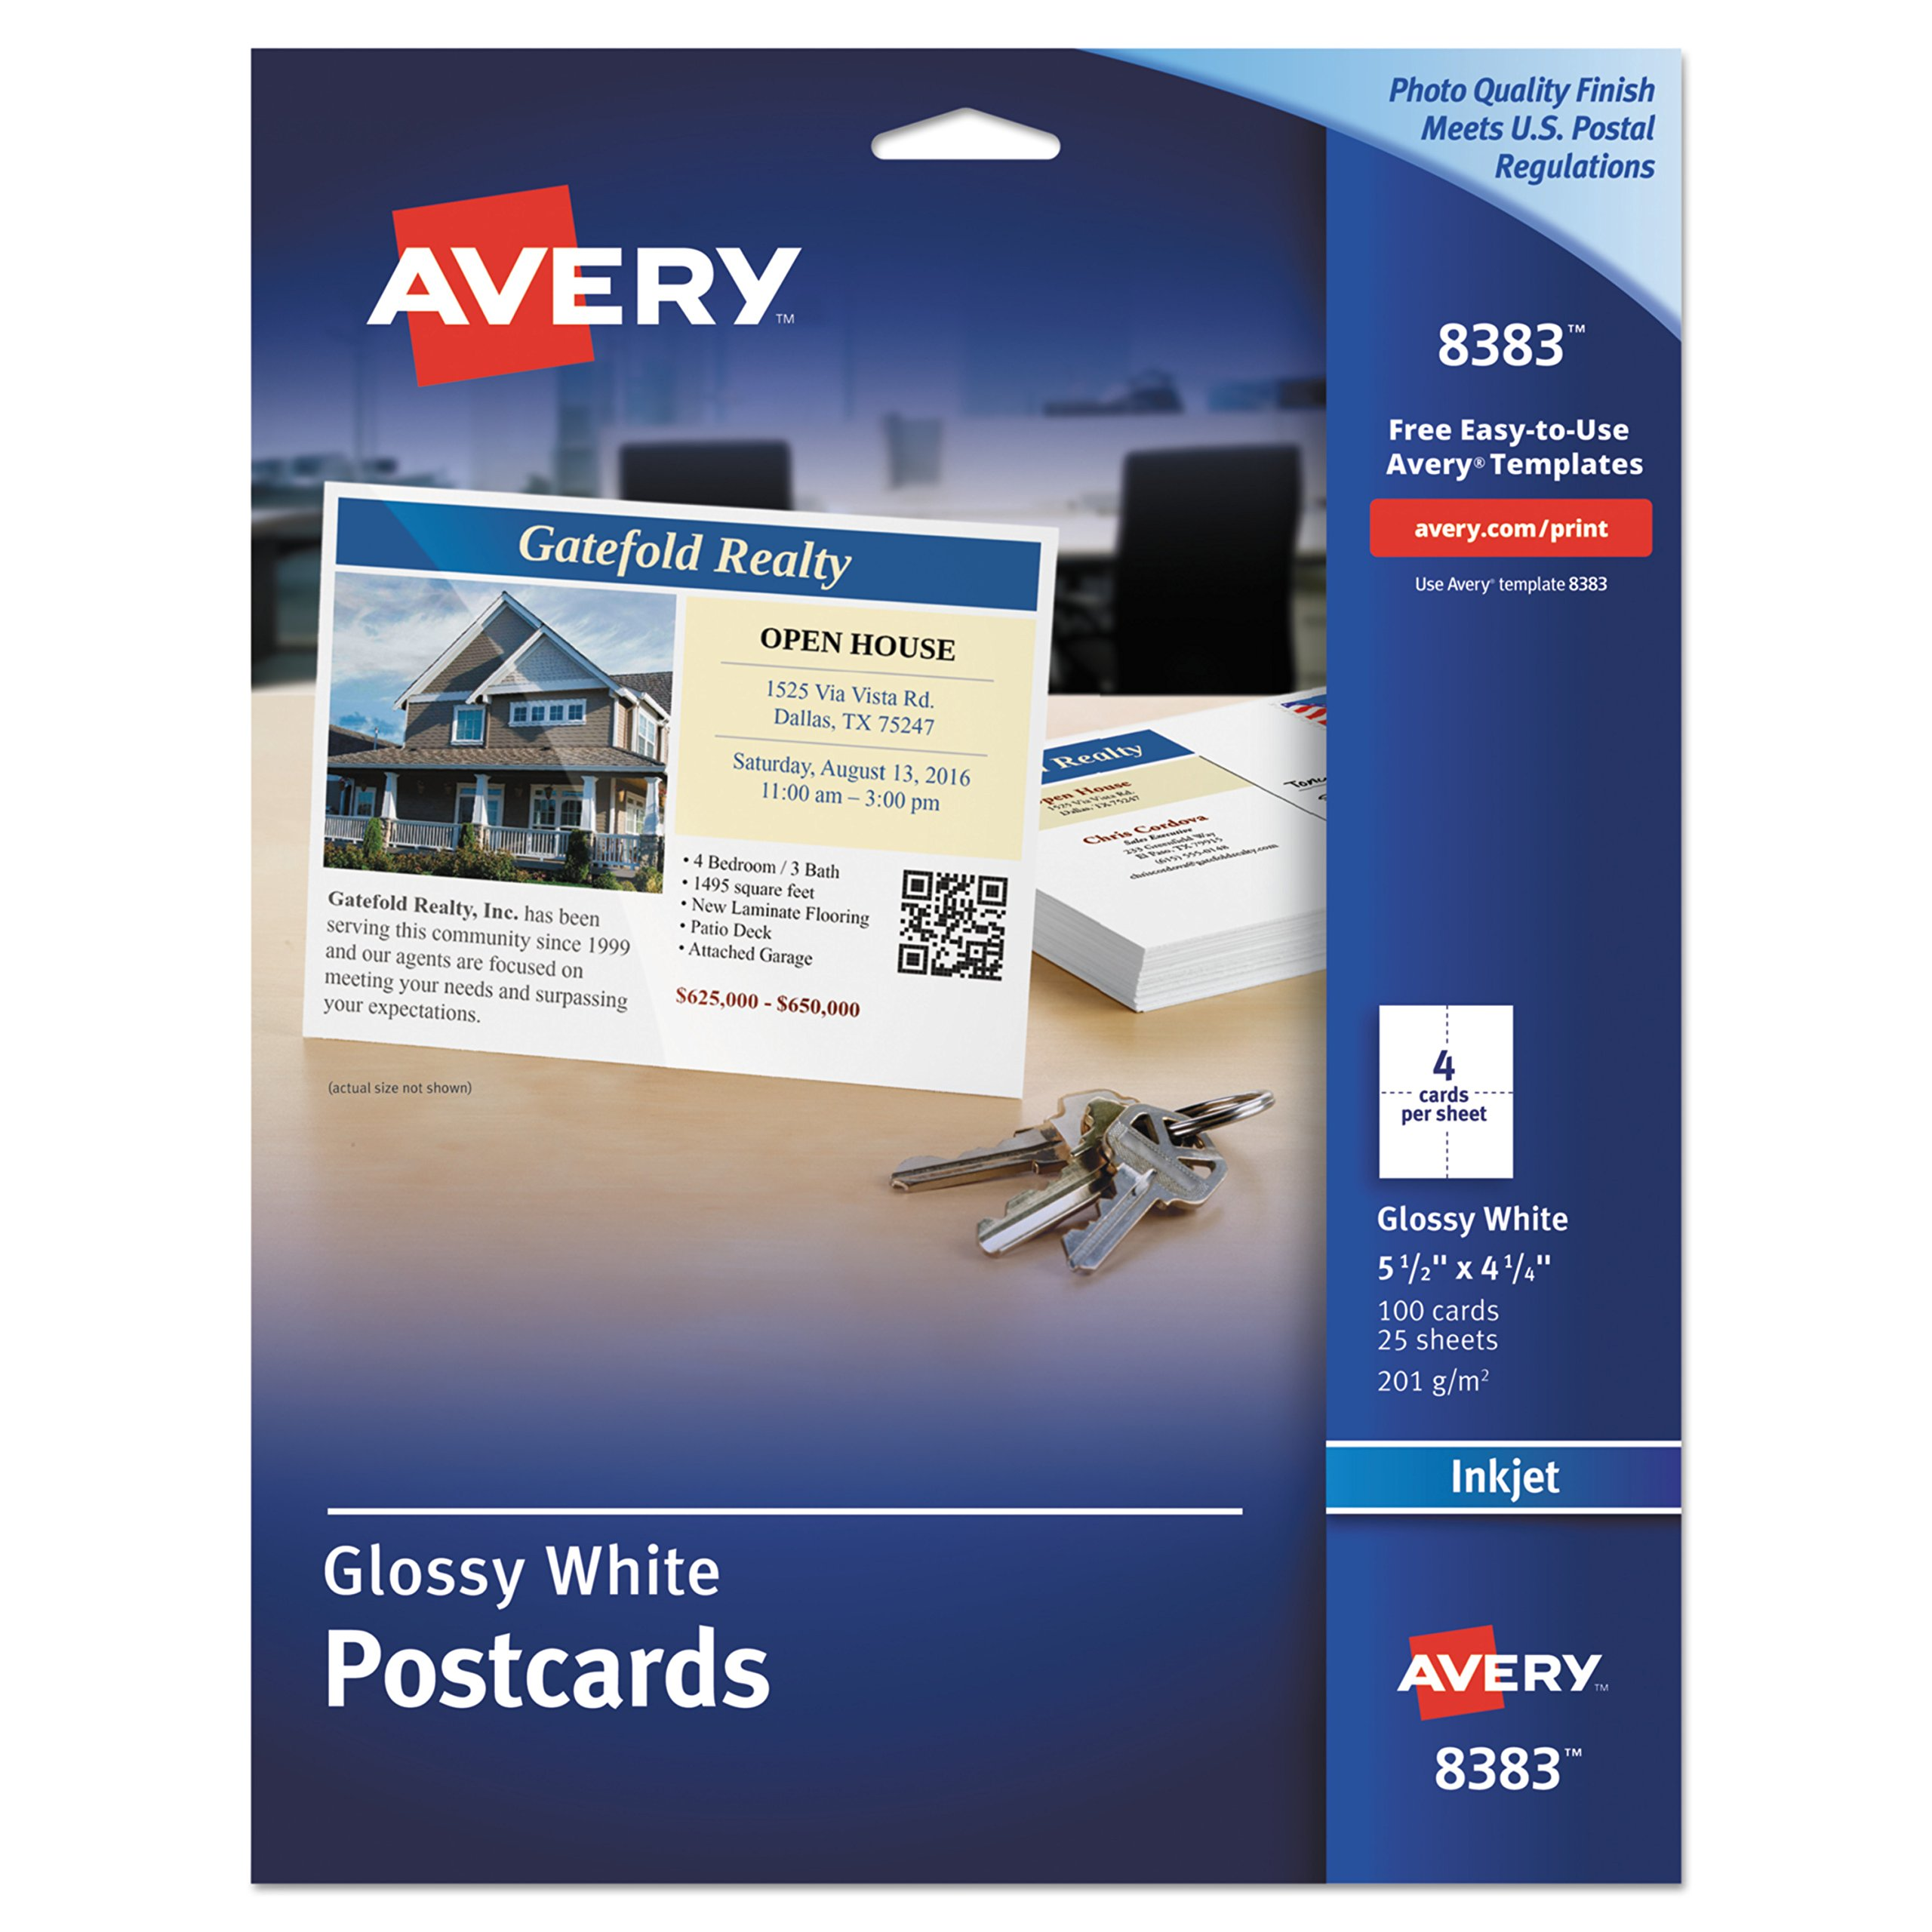 Avery 8383 Photo-Quality Glossy Postcards for Inkjet Printers, 4 1/4 x 5 1/2, White (Pack of 100) by AVERY